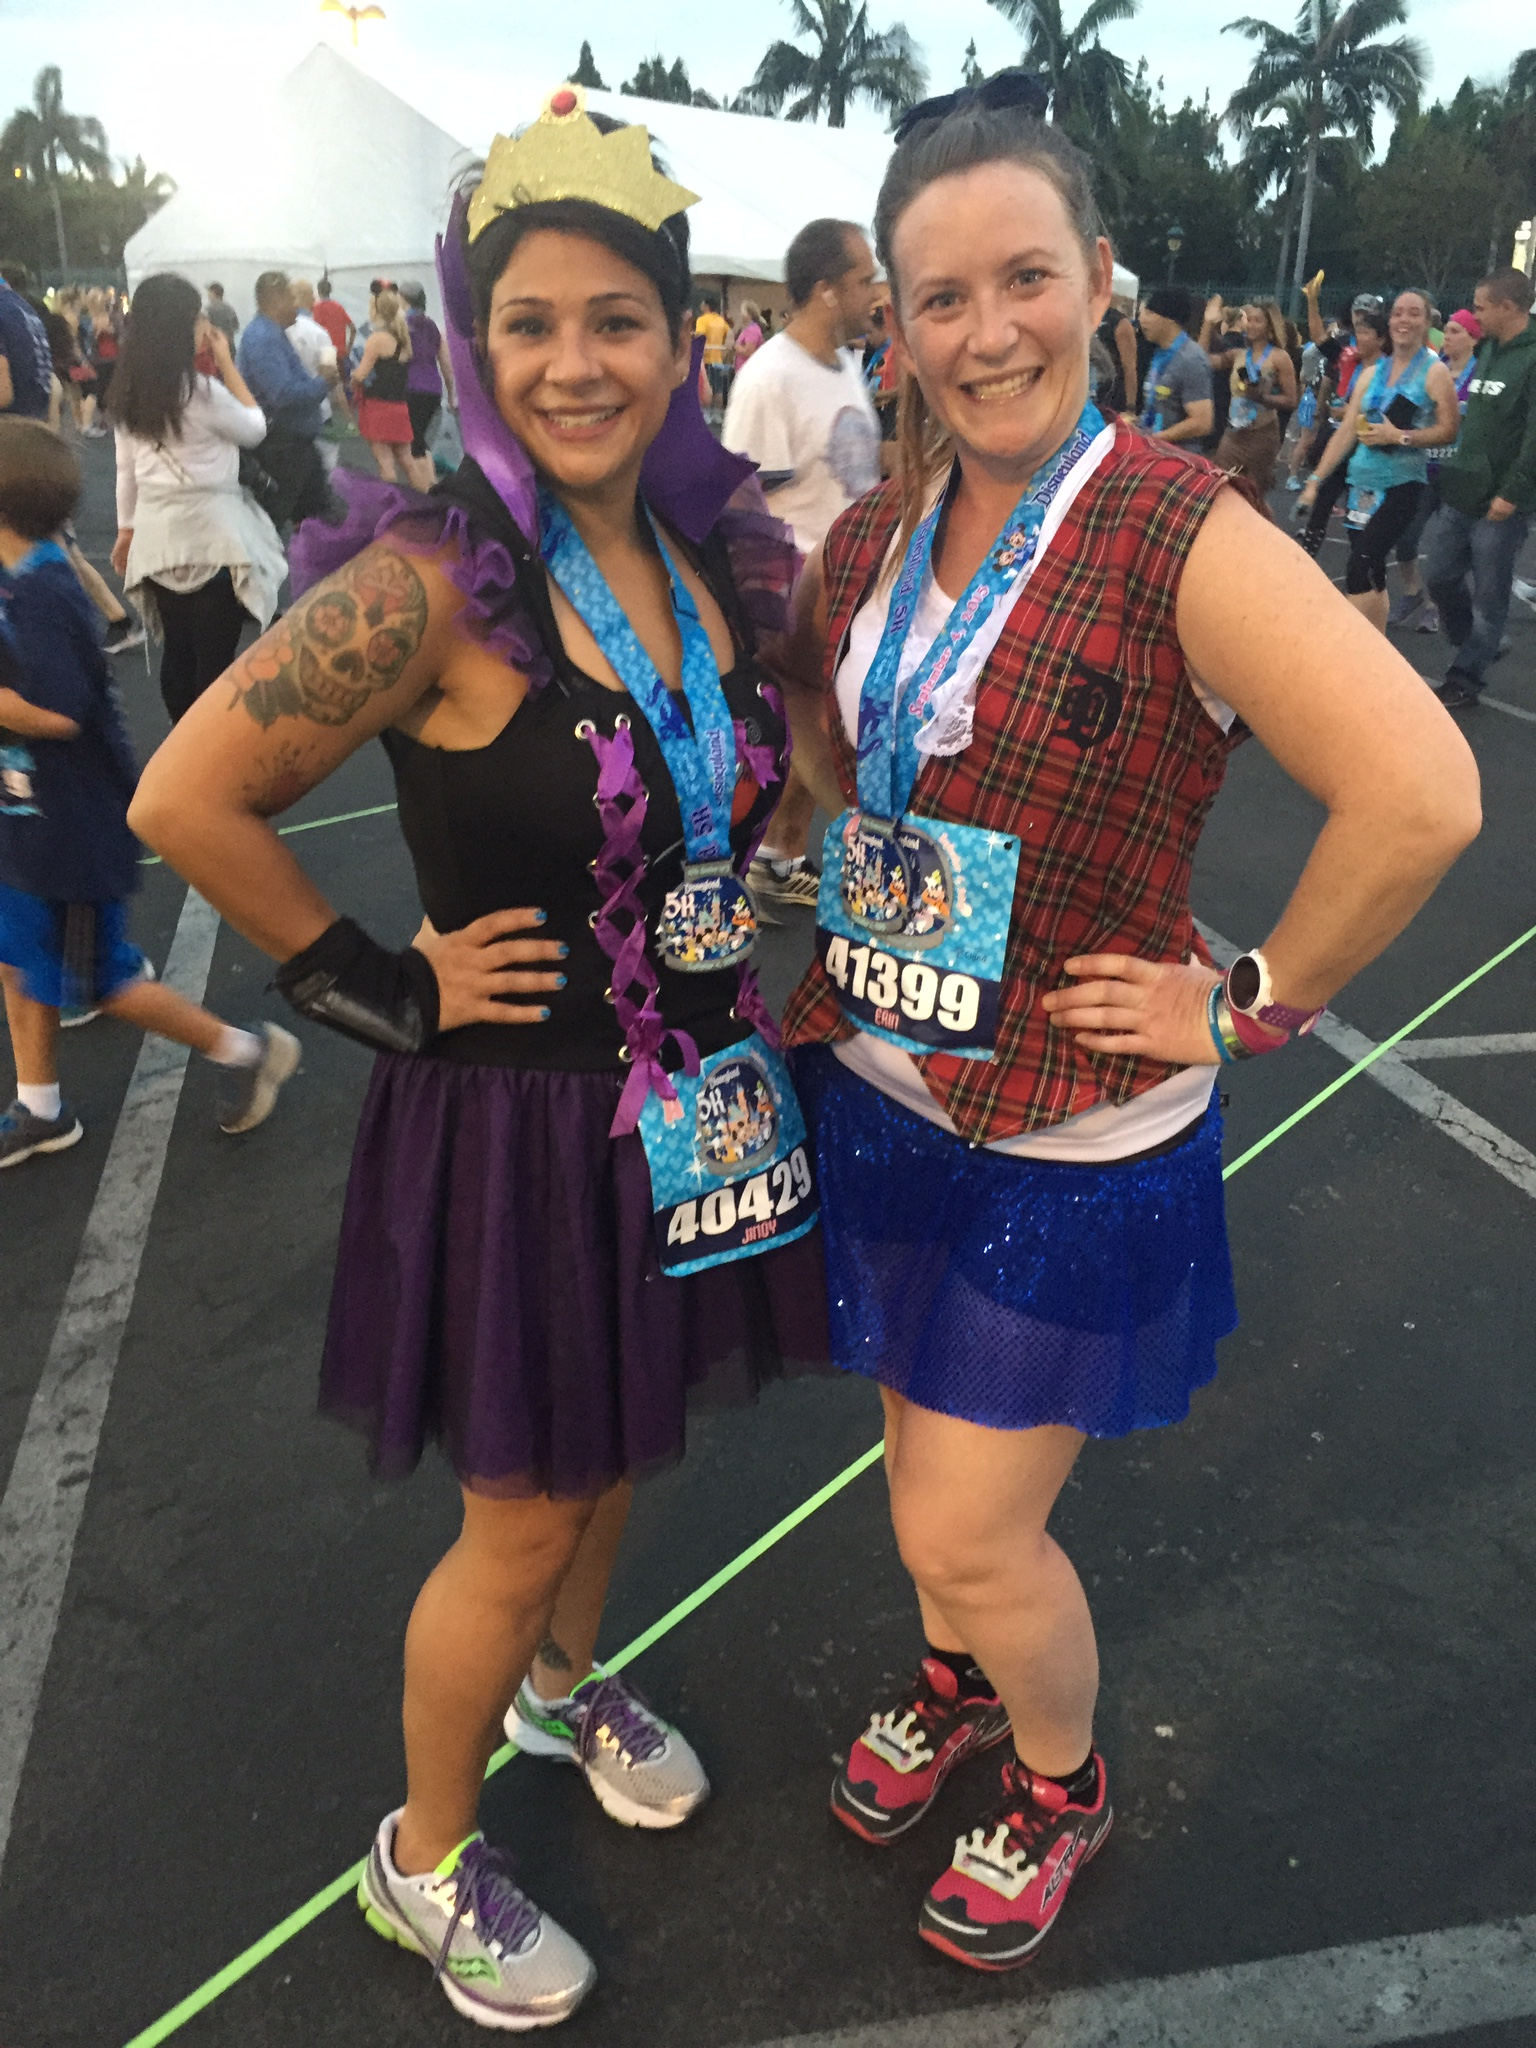 Rundisney Disneyland 5k Race Recap Wonderland Diaries